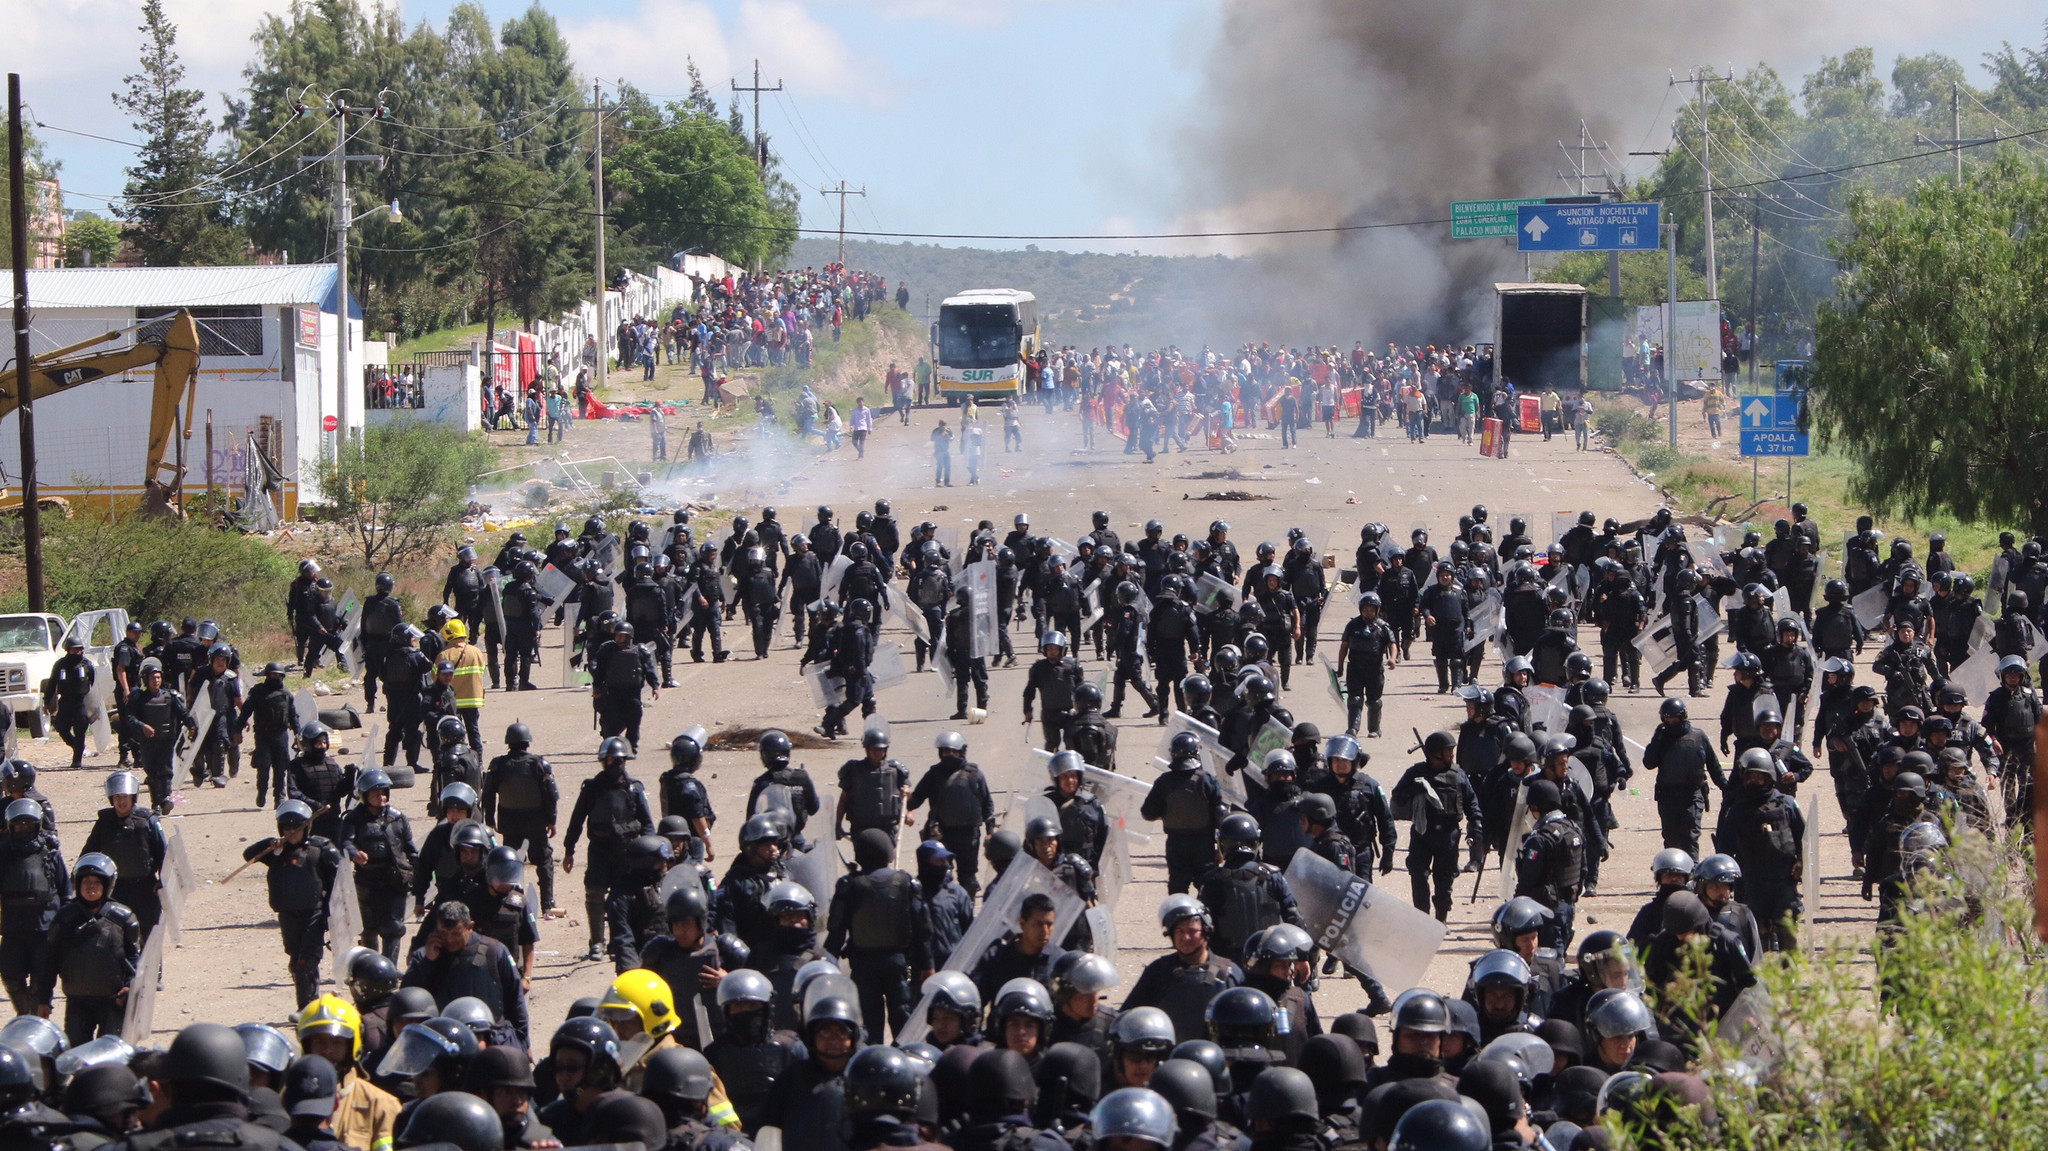 About 800 federal and state officers were sent to Nochixtlan to remove the roadblock erected by protesting teachers.